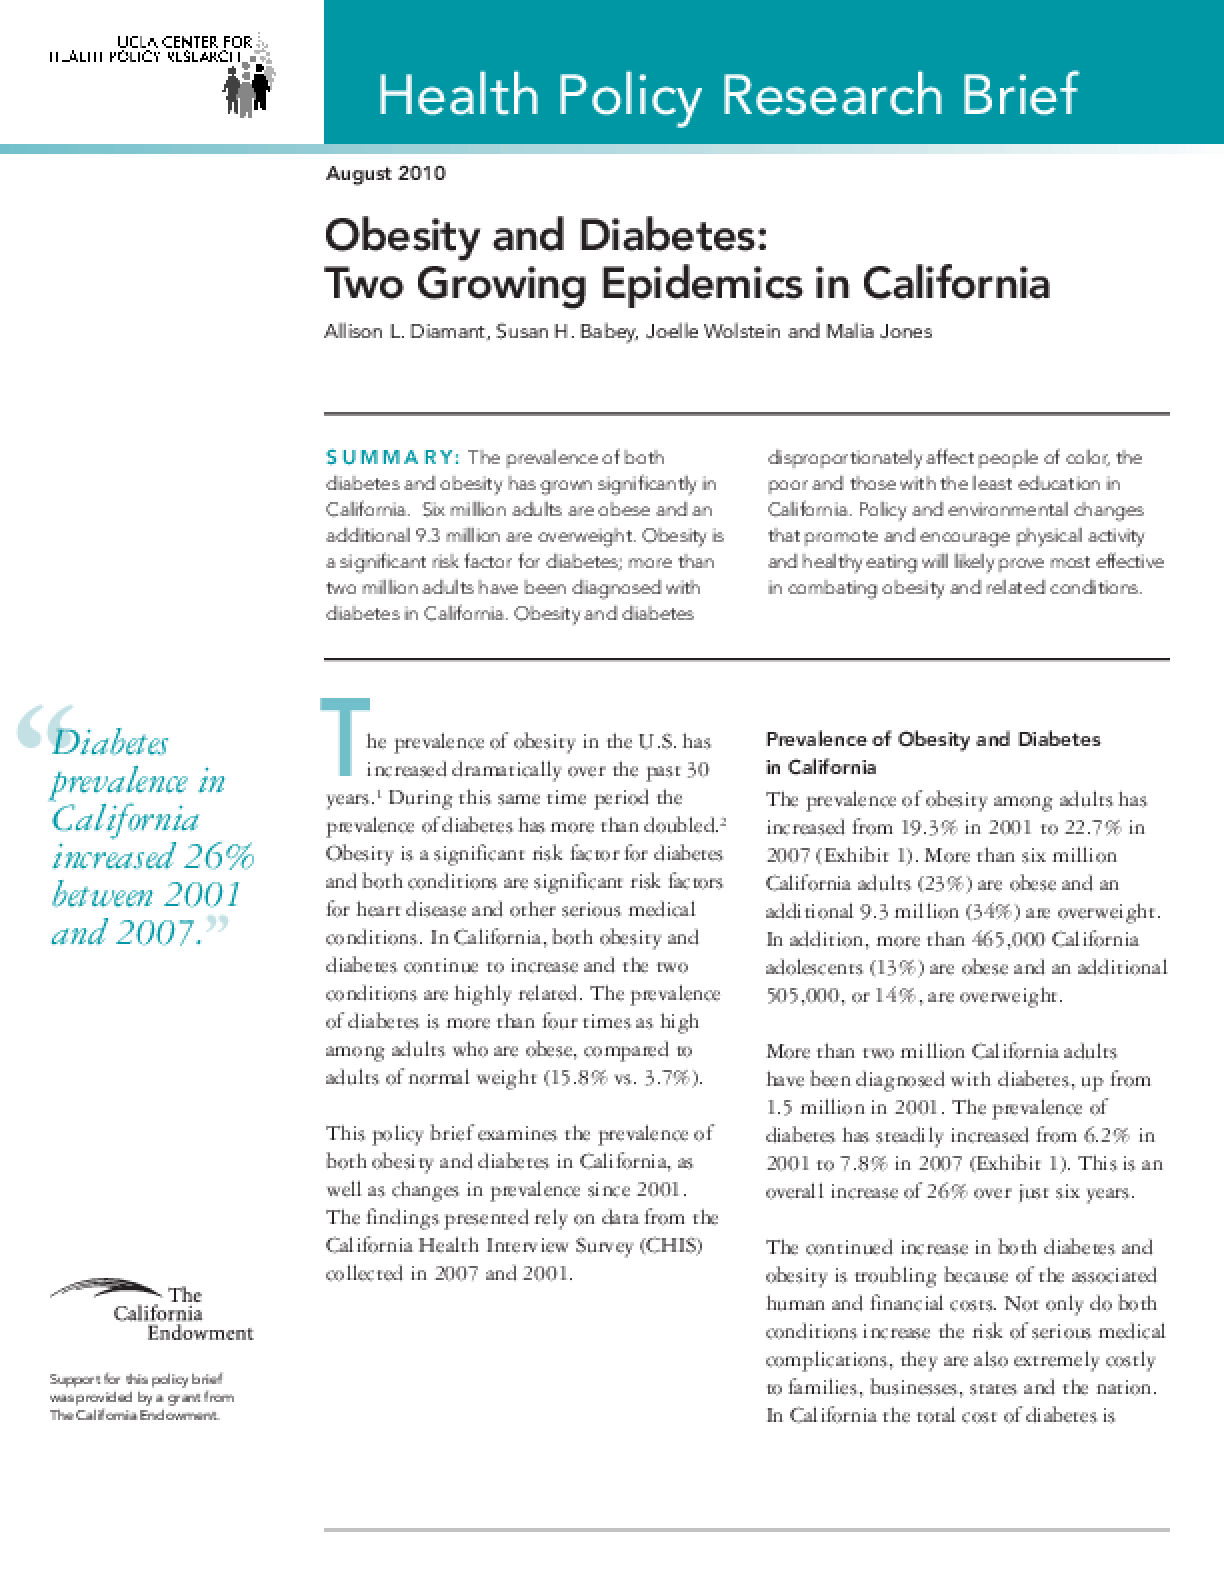 Obesity and Diabetes: Two Growing Epidemics in California